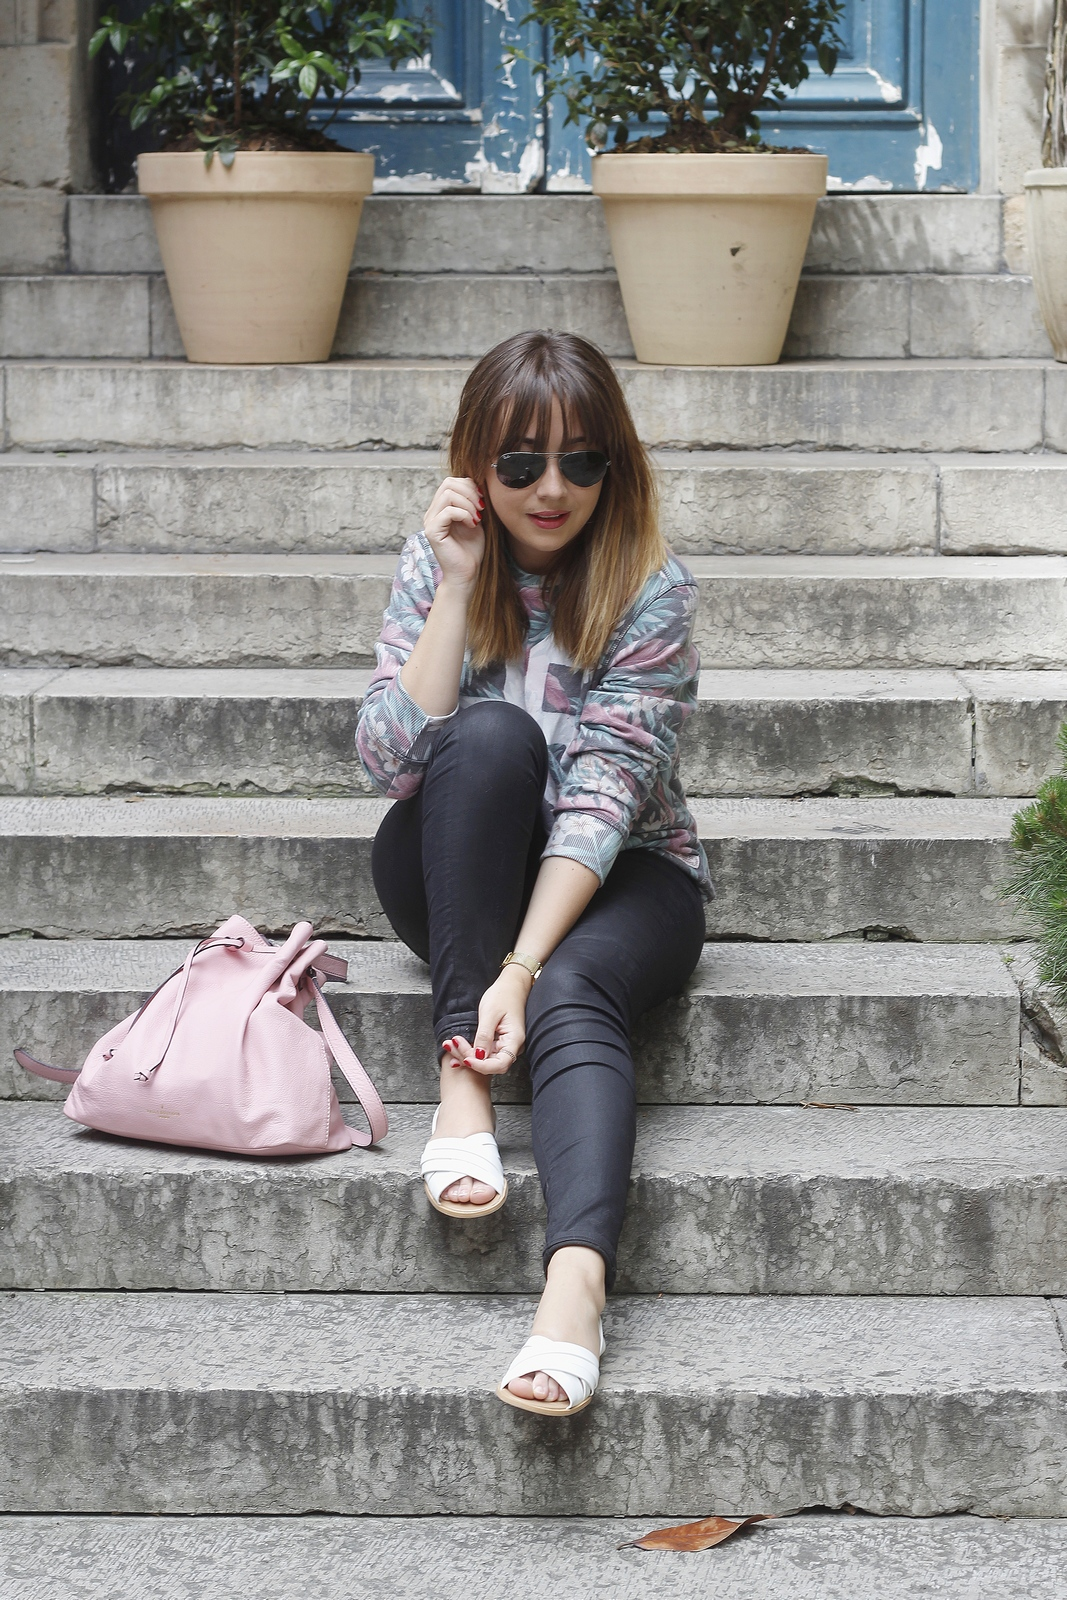 Blog mode femme Paris - Du style, Madame - streetstyle - tropical - kaporal